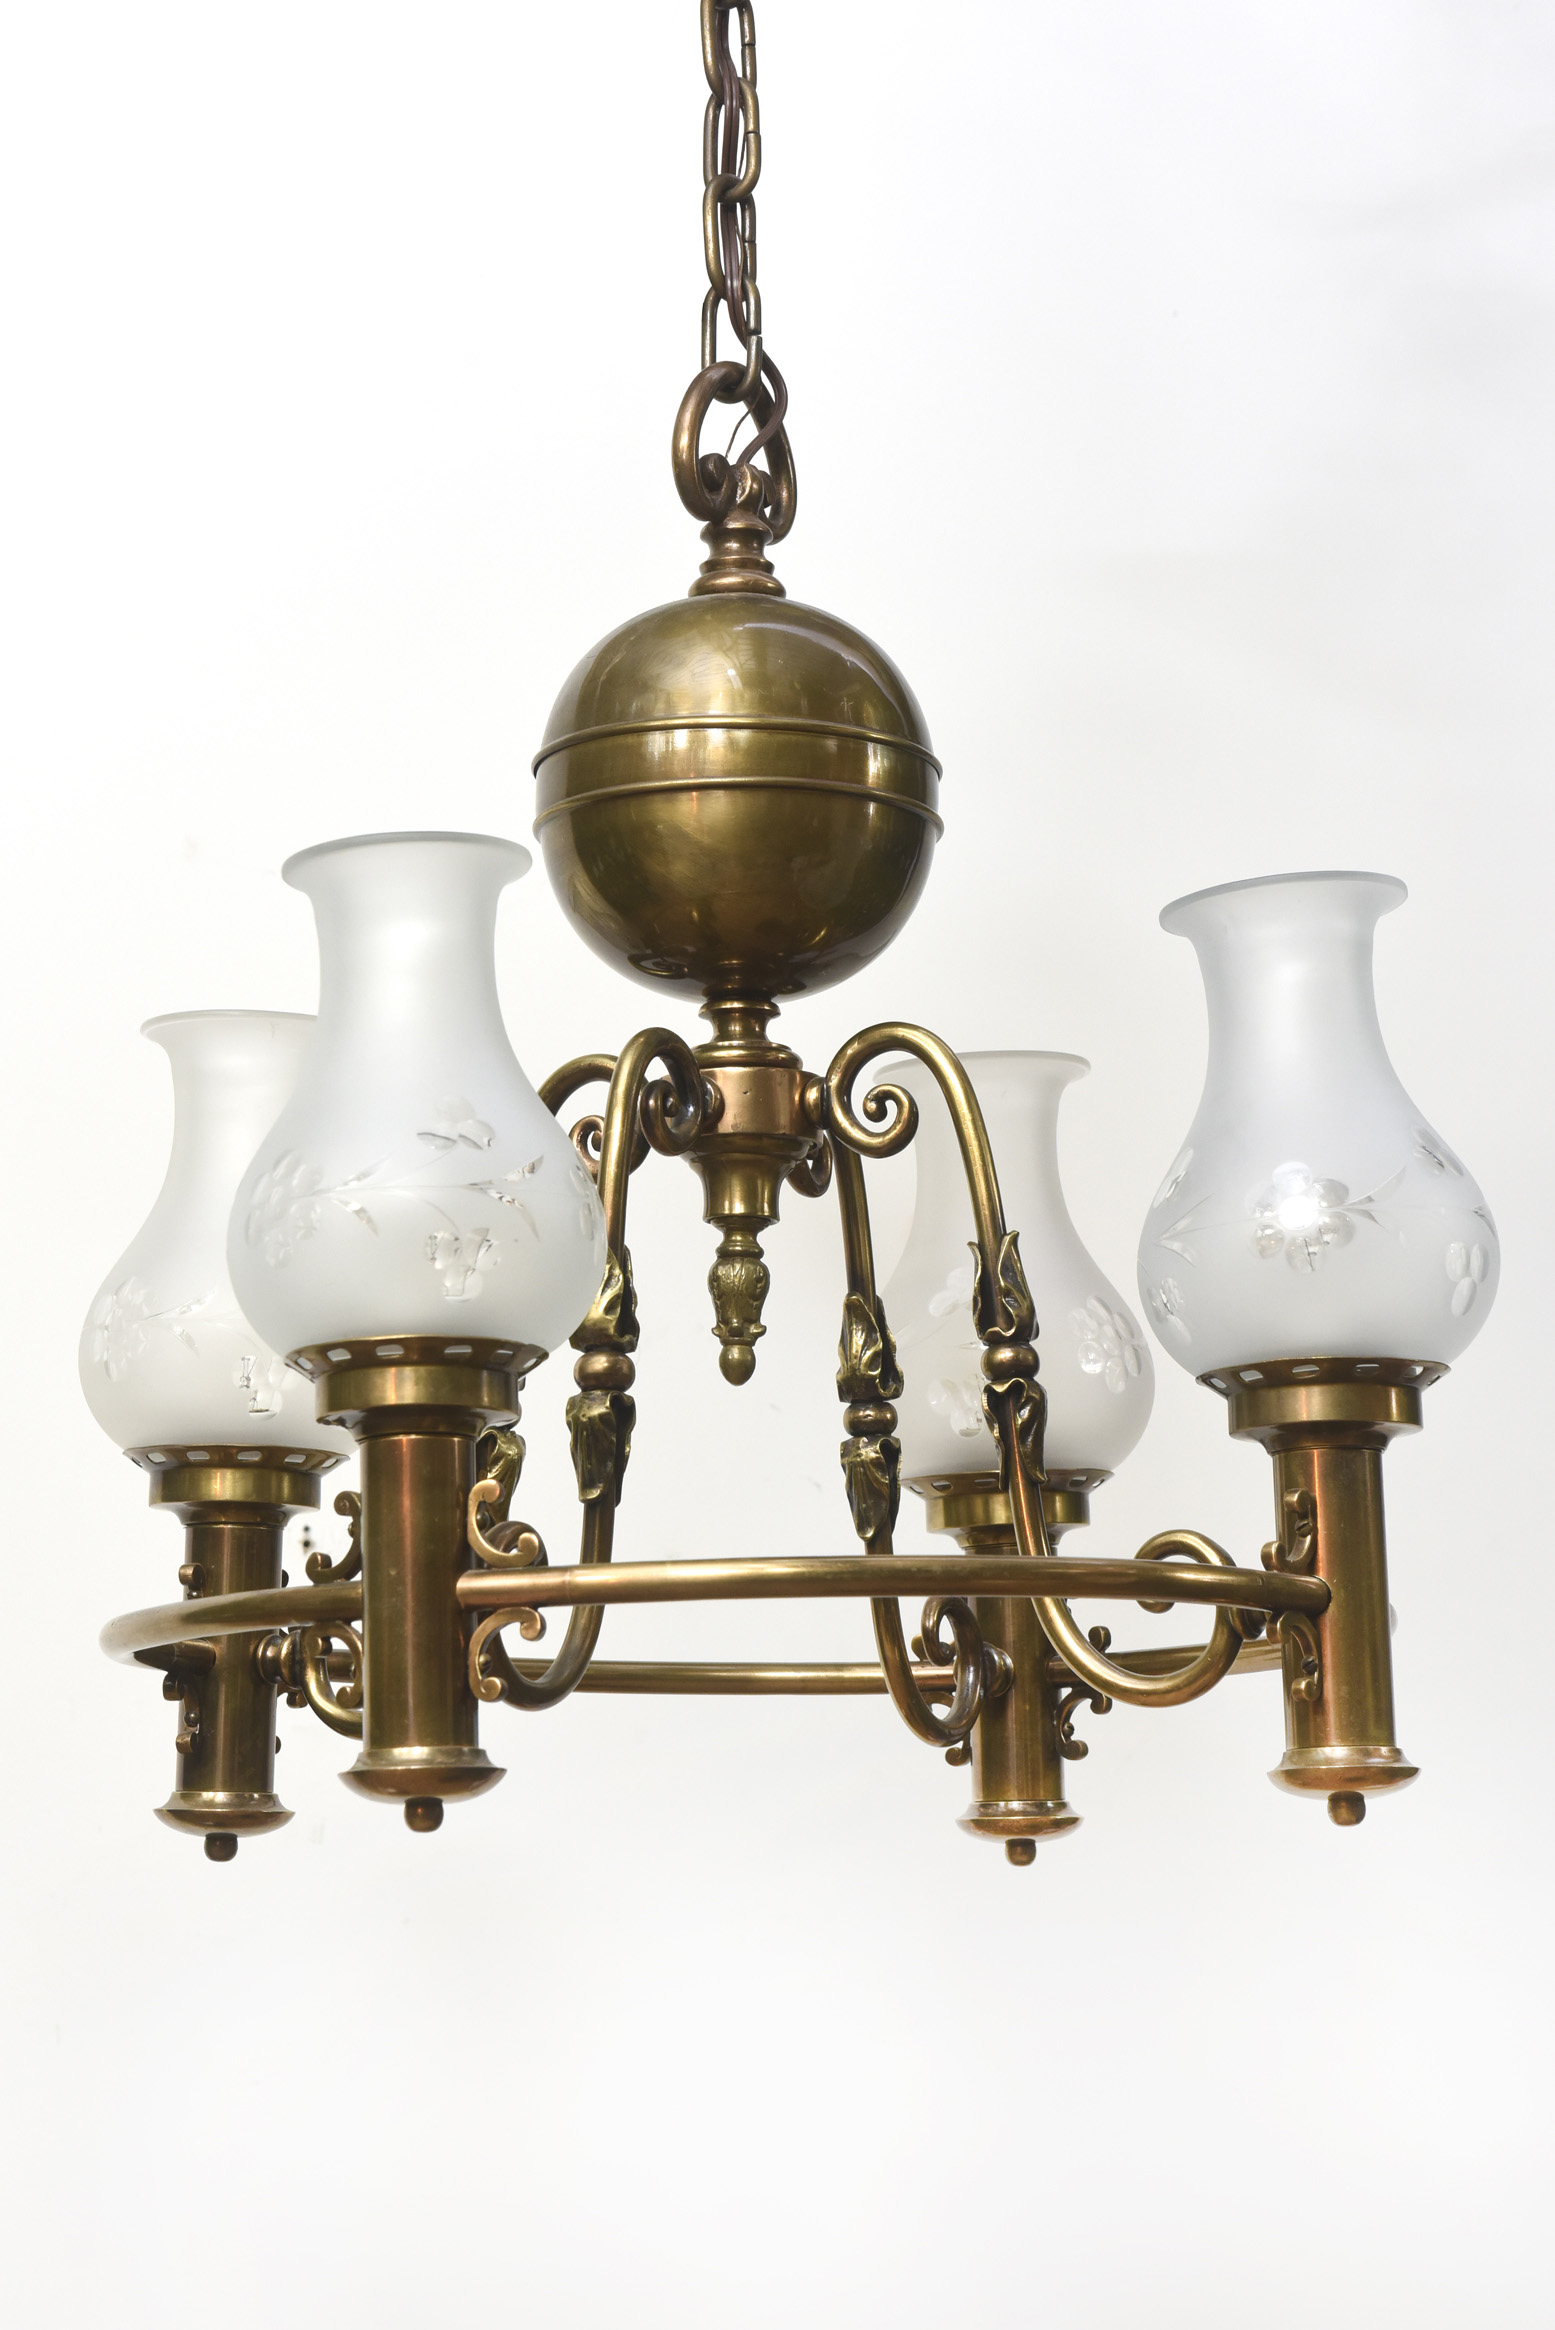 Four Light Colonial Revival Chandelier